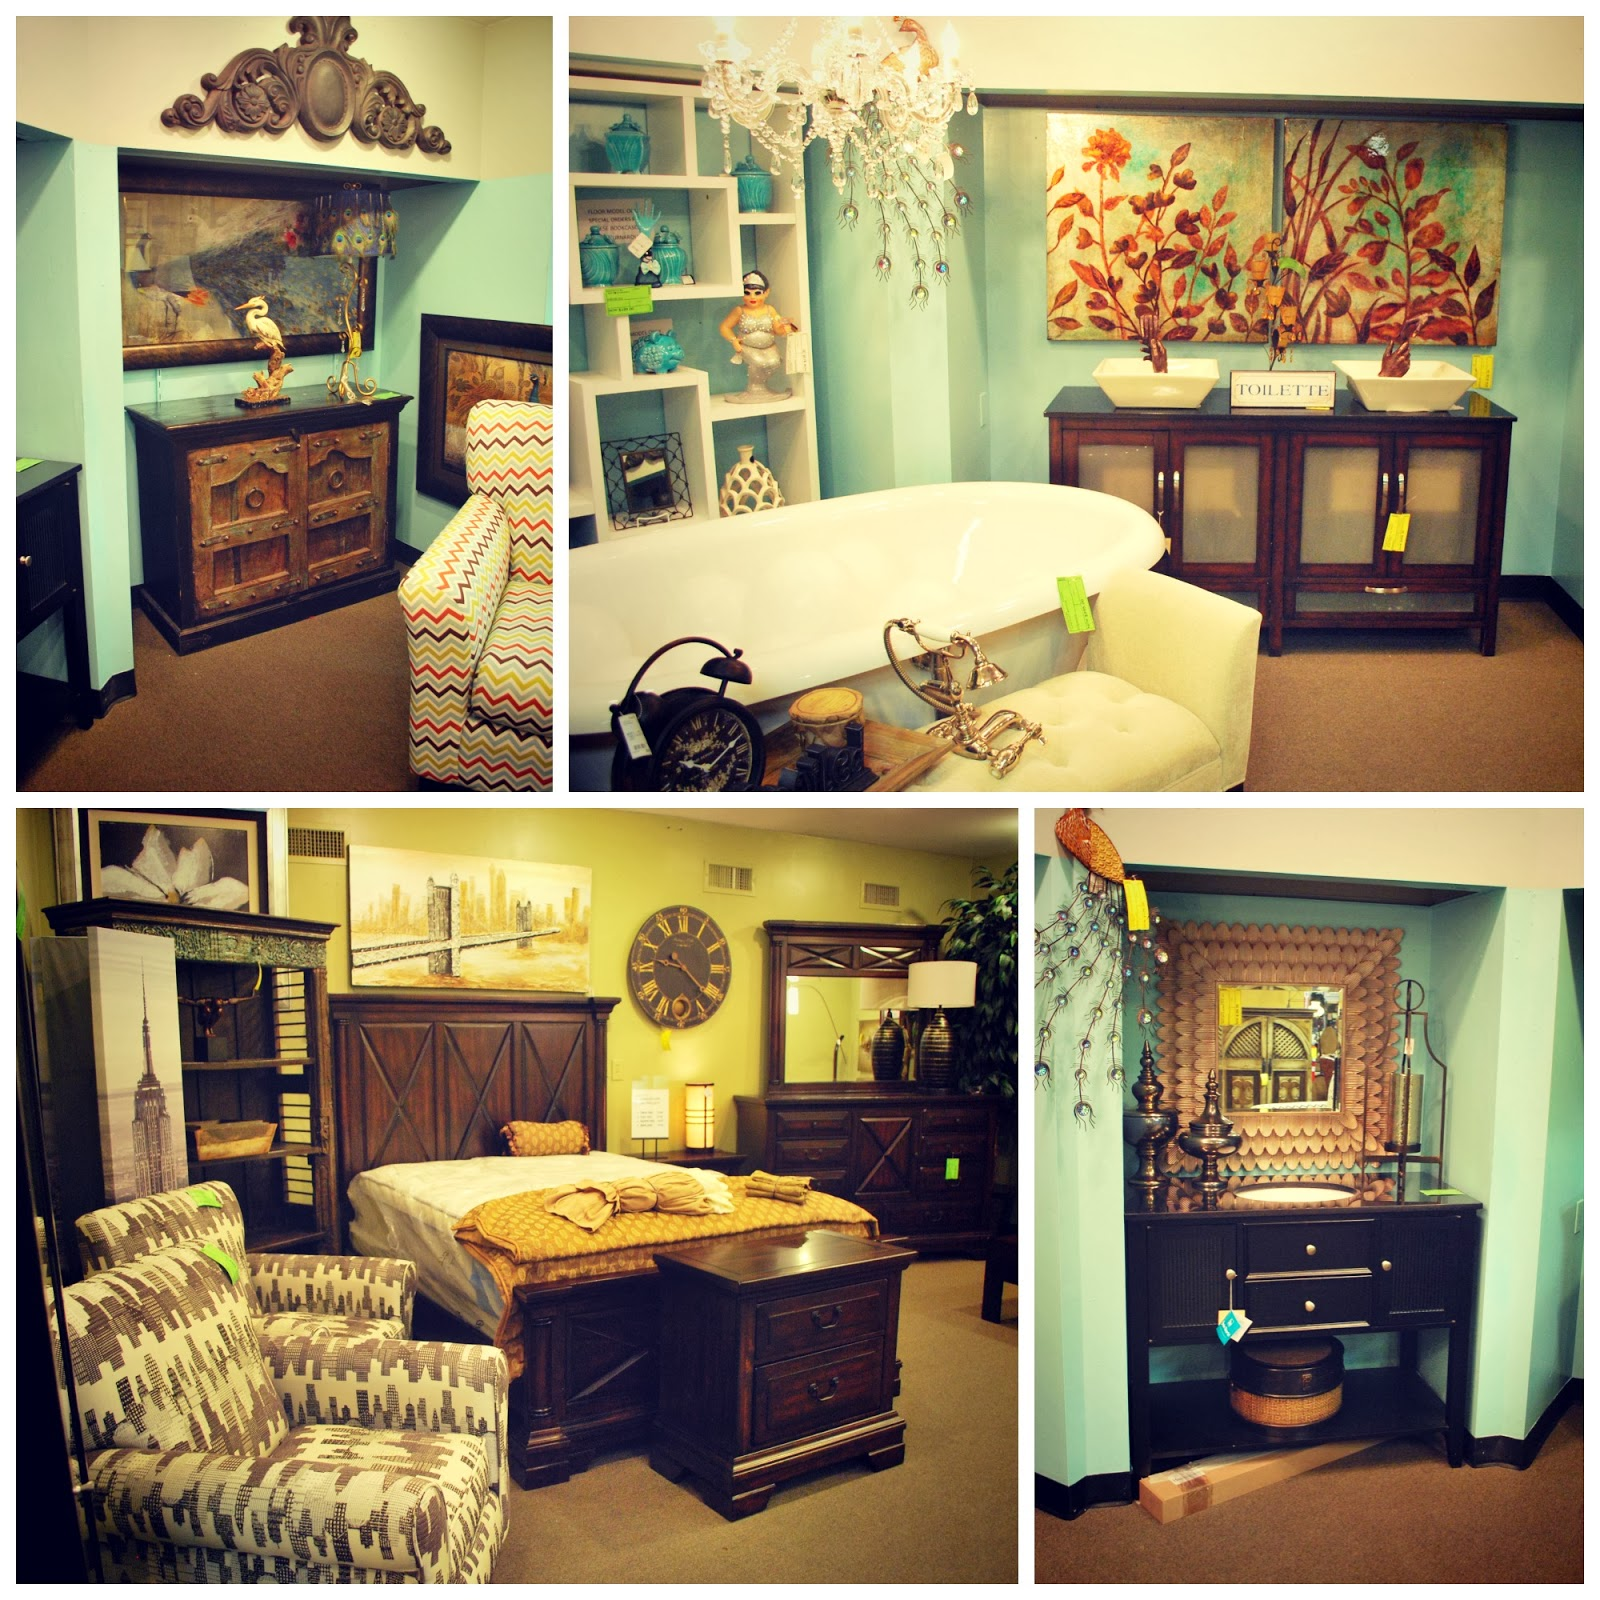 atlanta furniture consignment store best price furniture atlanta eco friendly furniture consignment - Home Decor Furniture